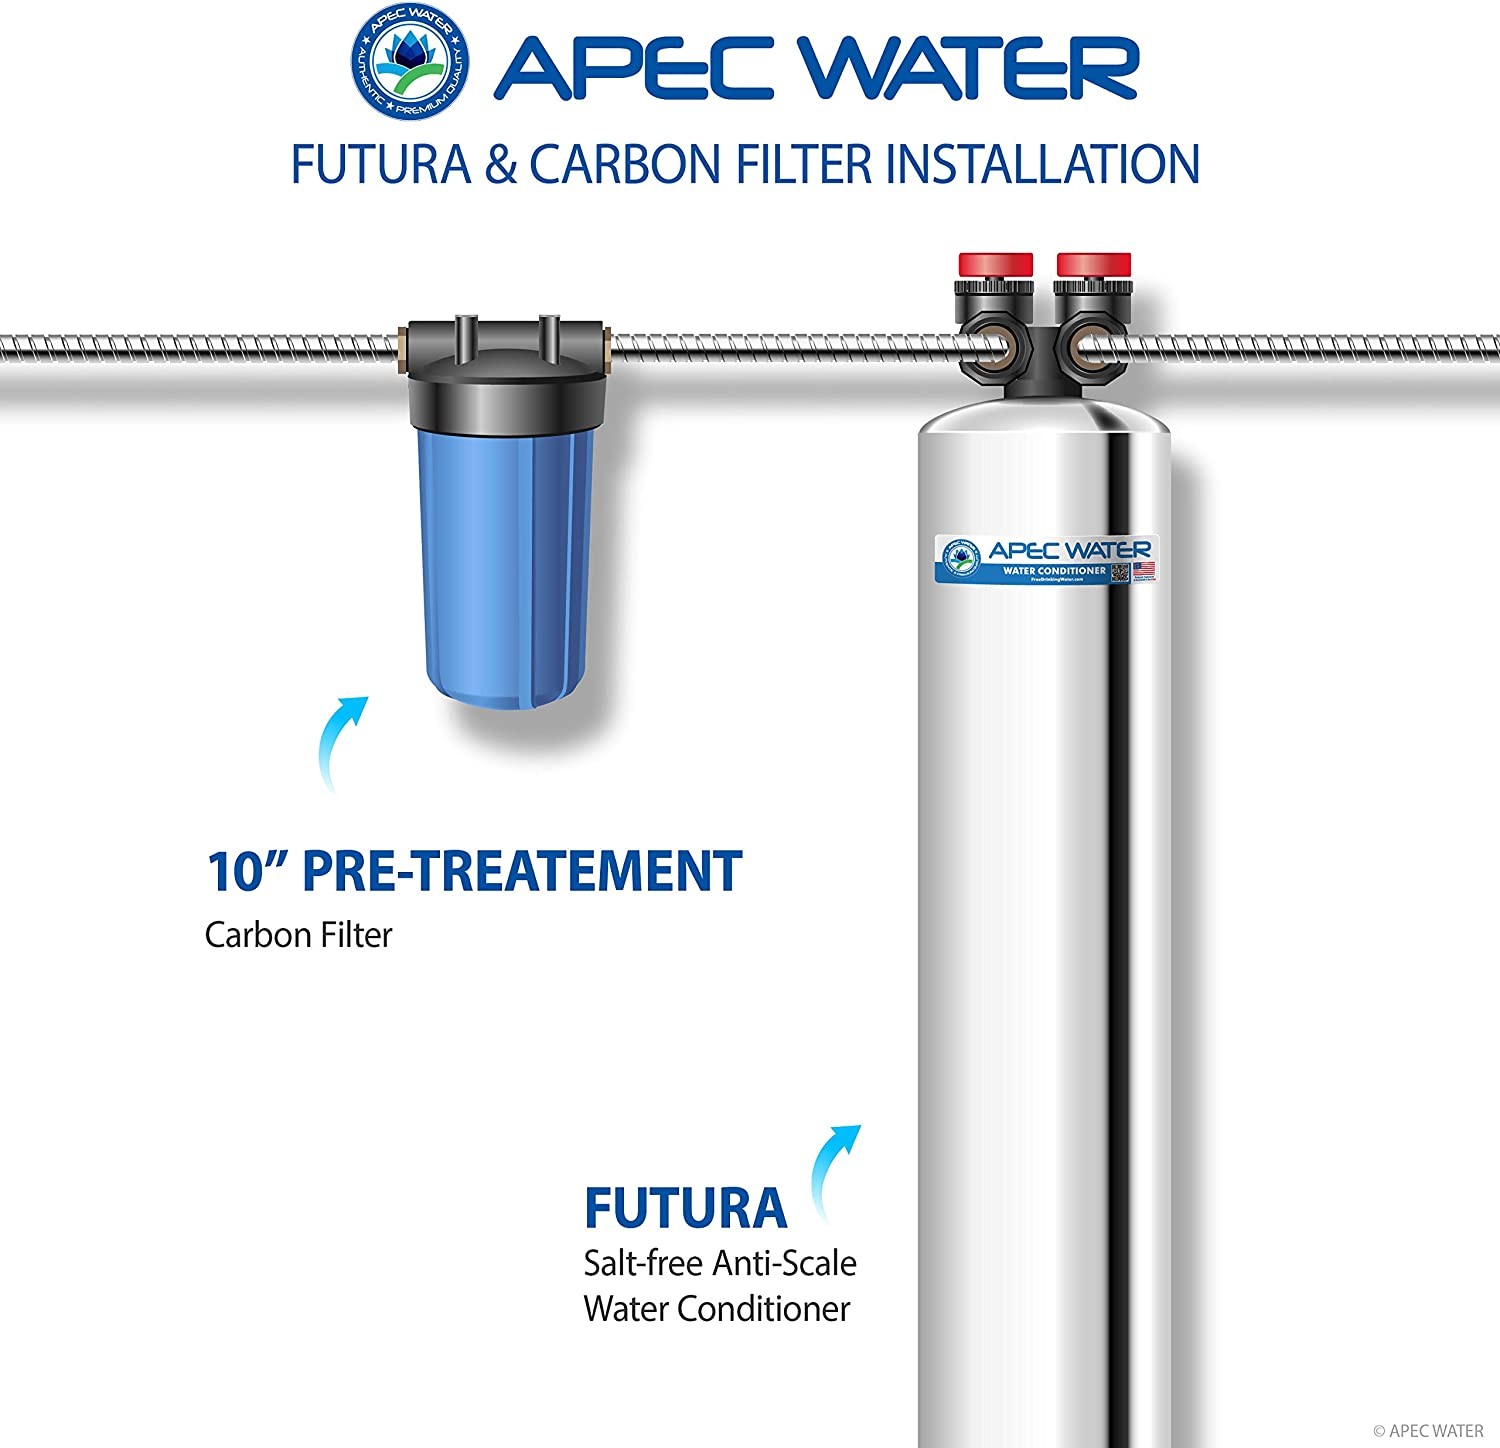 APEC Water FUTURA-10 Water Conditioner - with a whole house filter